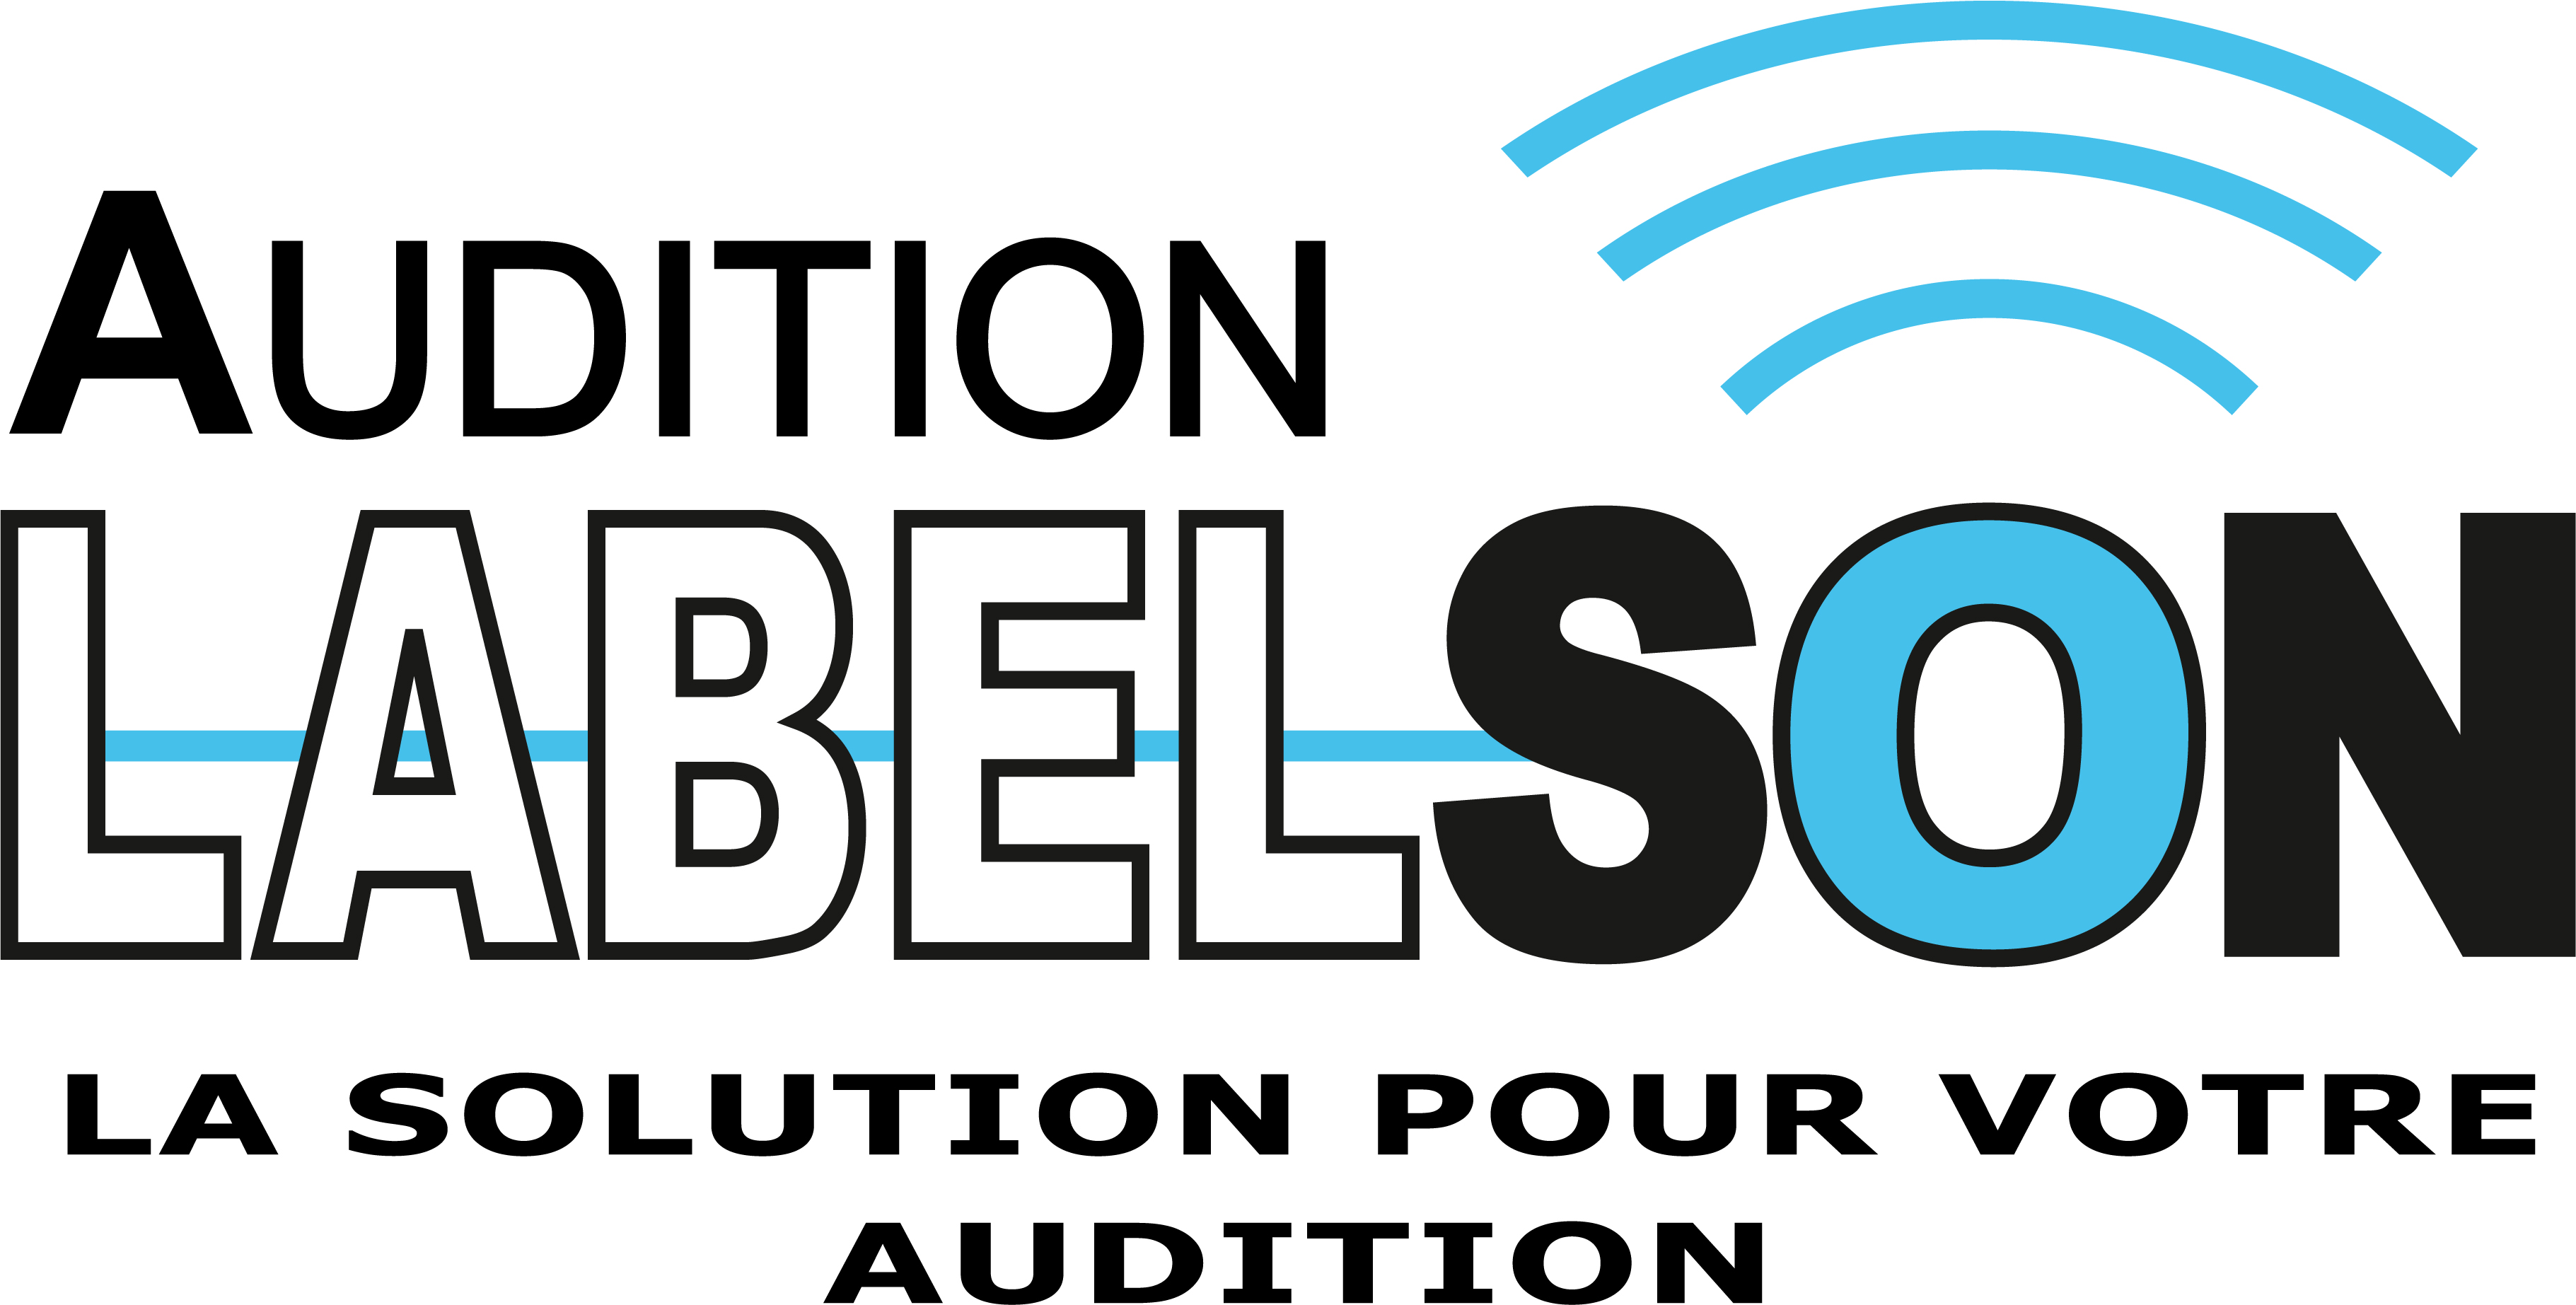 Audition Labelson appareil auditif à Mourenx, Nay et Arudy Maître Audio